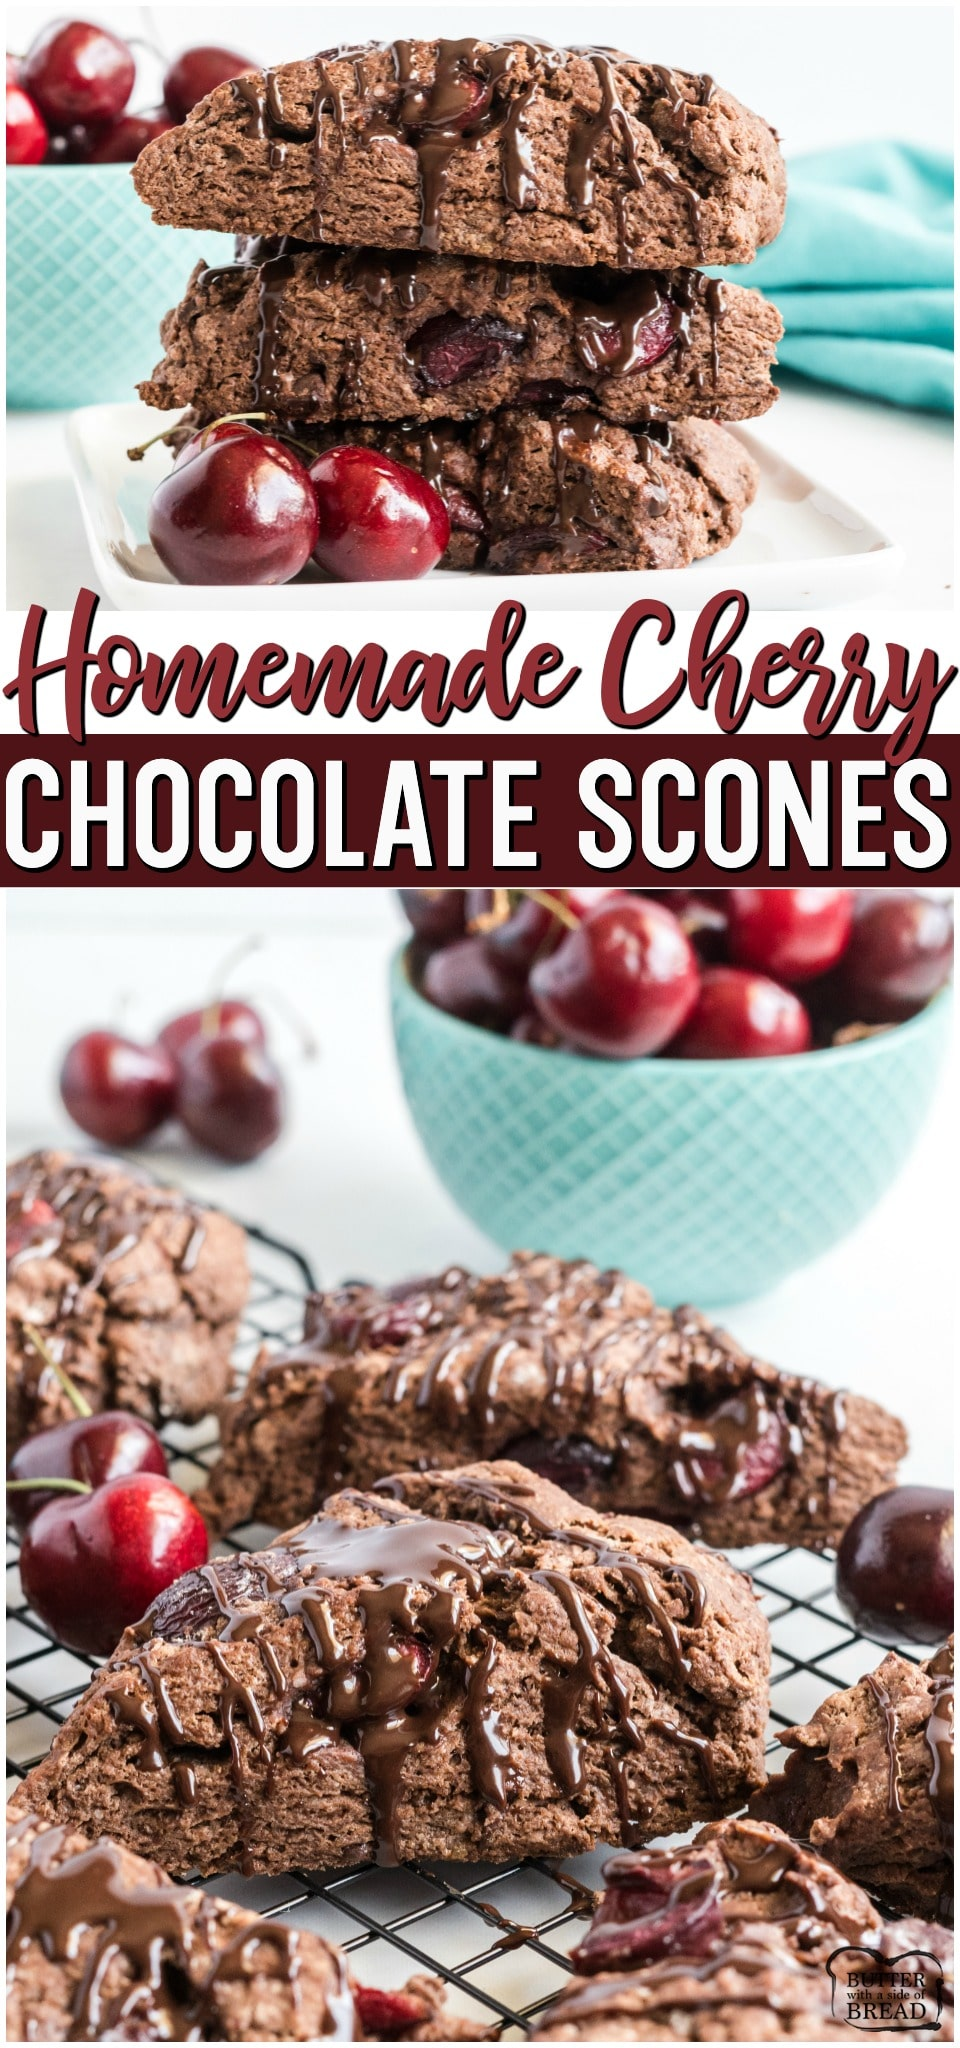 Cherry Chocolate Scones made with fresh cherries & dark chocolate for a perfect soft, sweet chocolate scone. Soft & flavorful homemade scone recipe great for breakfast or a treat! #scones #cherry #chocolate #baking #recipe #breakfast #dessert #scones from BUTTER WITH A SIDE OF BREAD